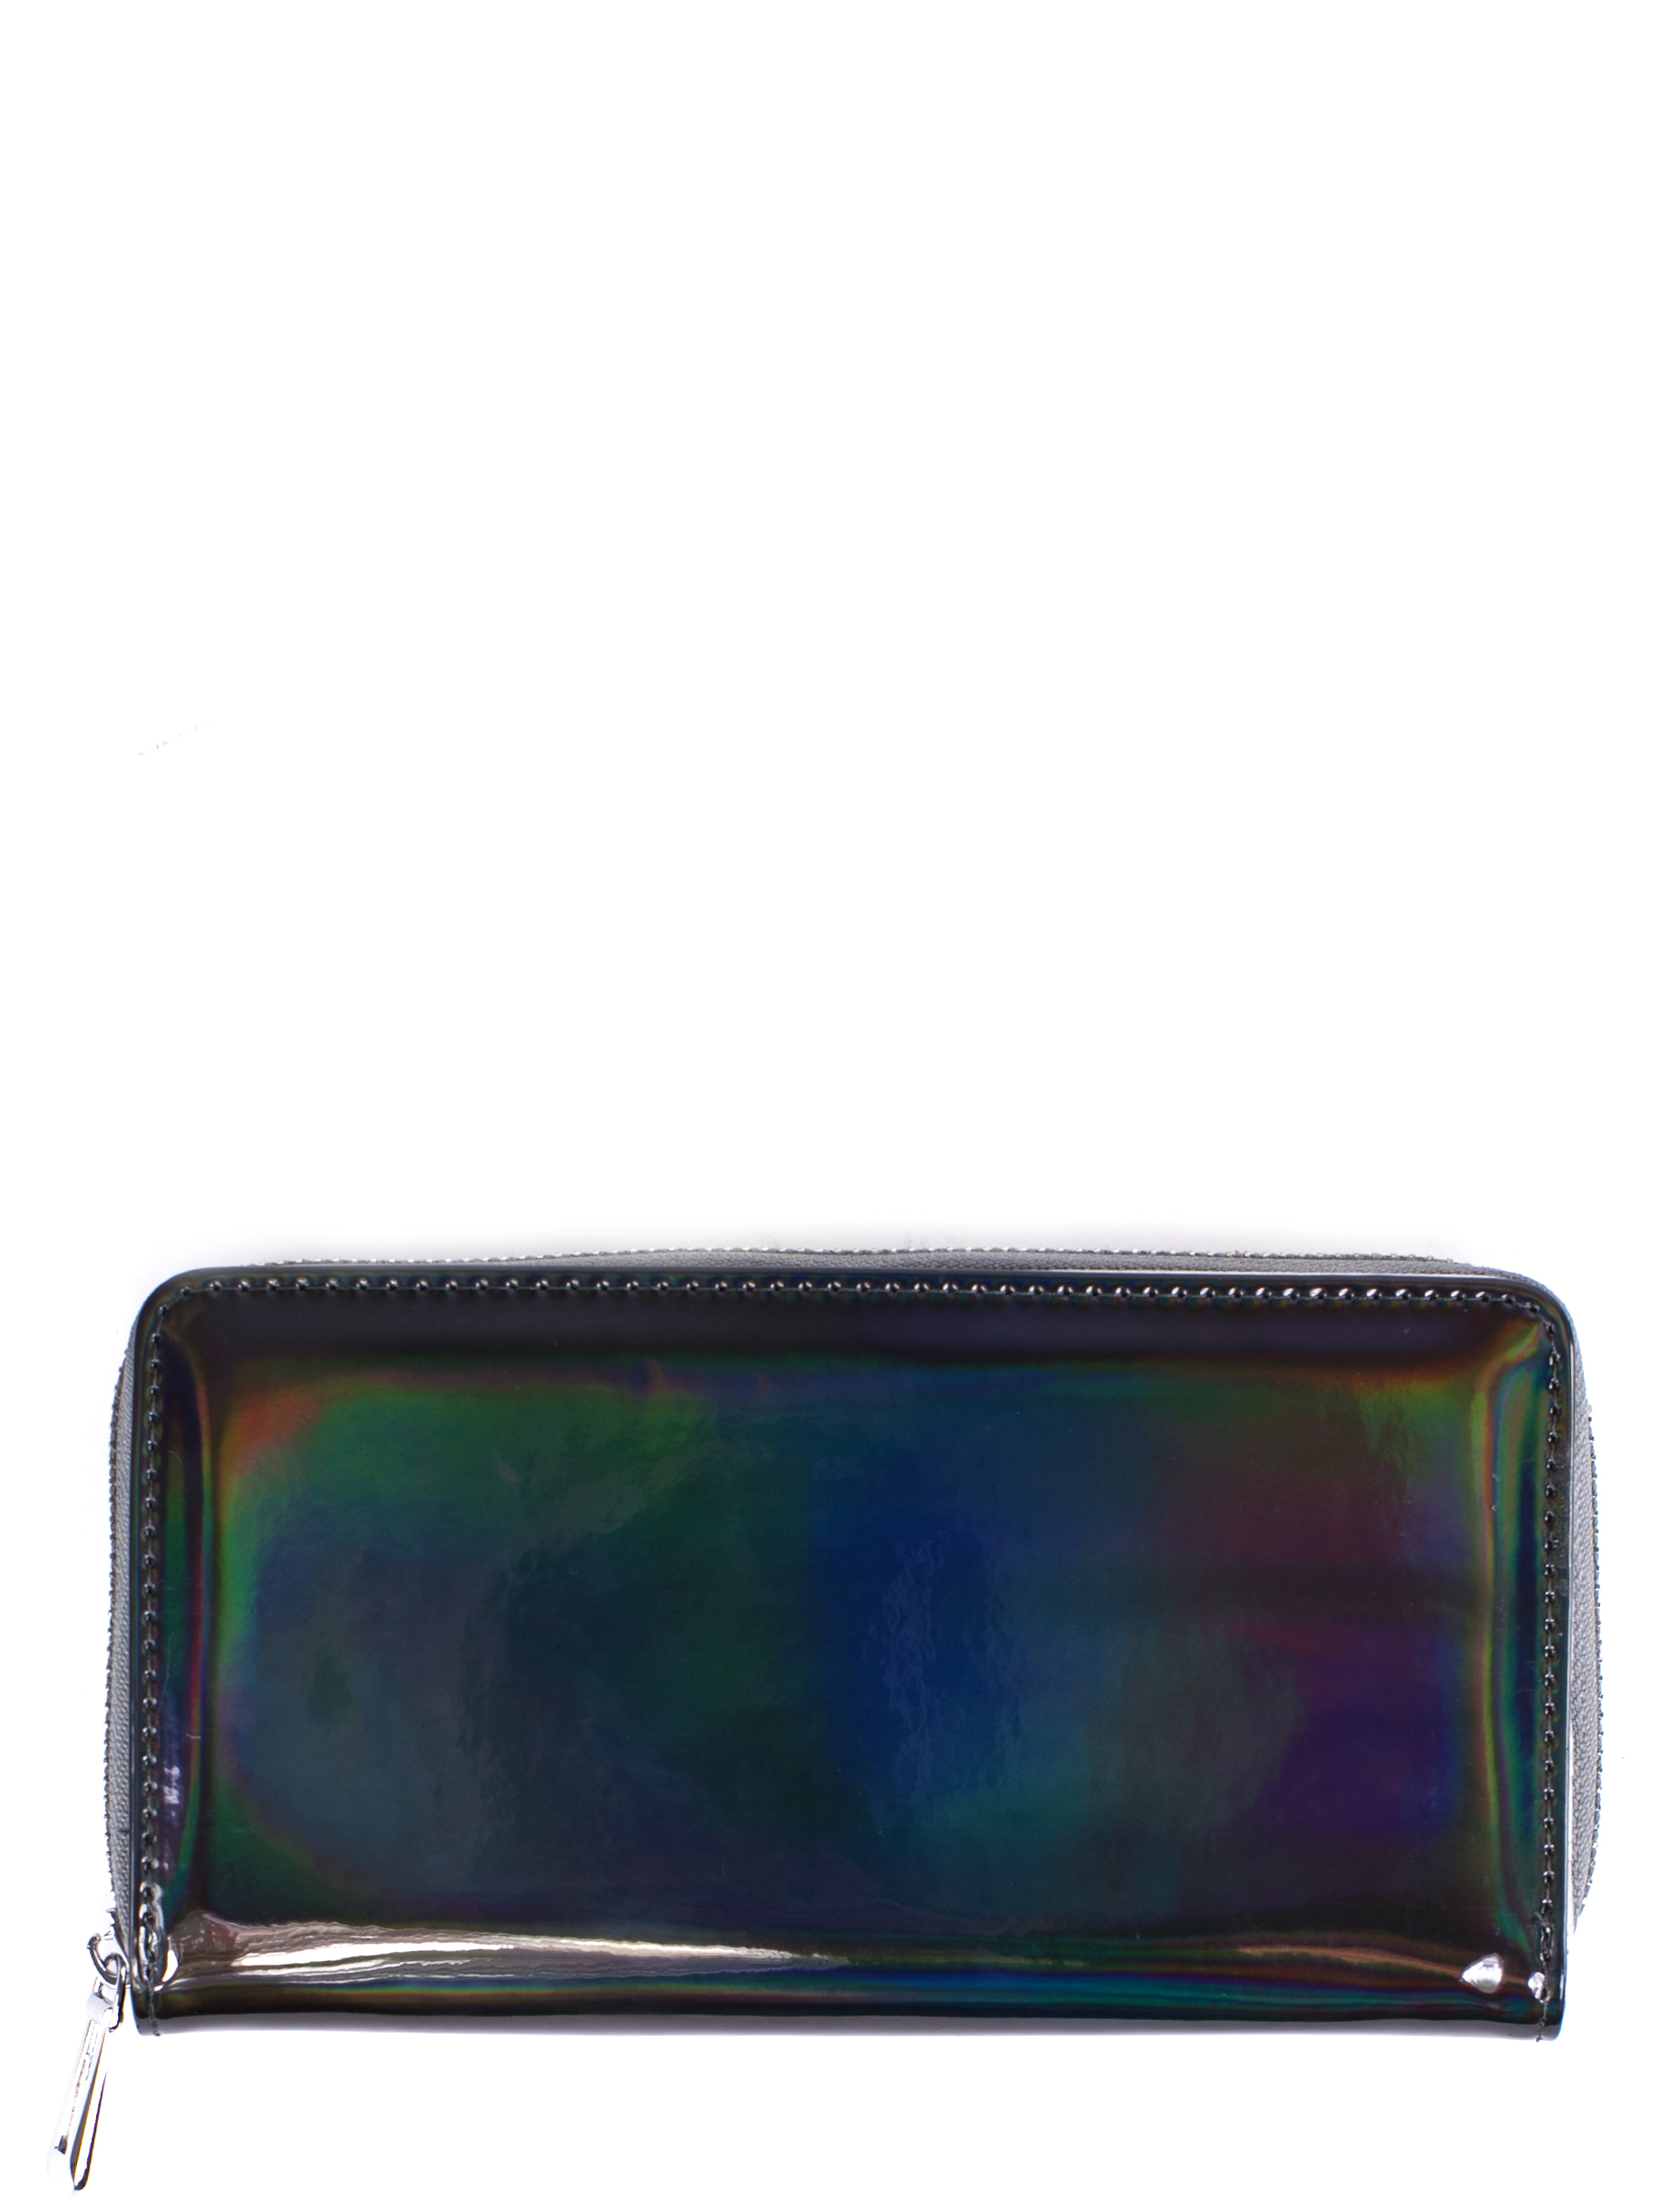 OBLIVION HOLOGRAPHIC POTION ZIP AROUND PURSE